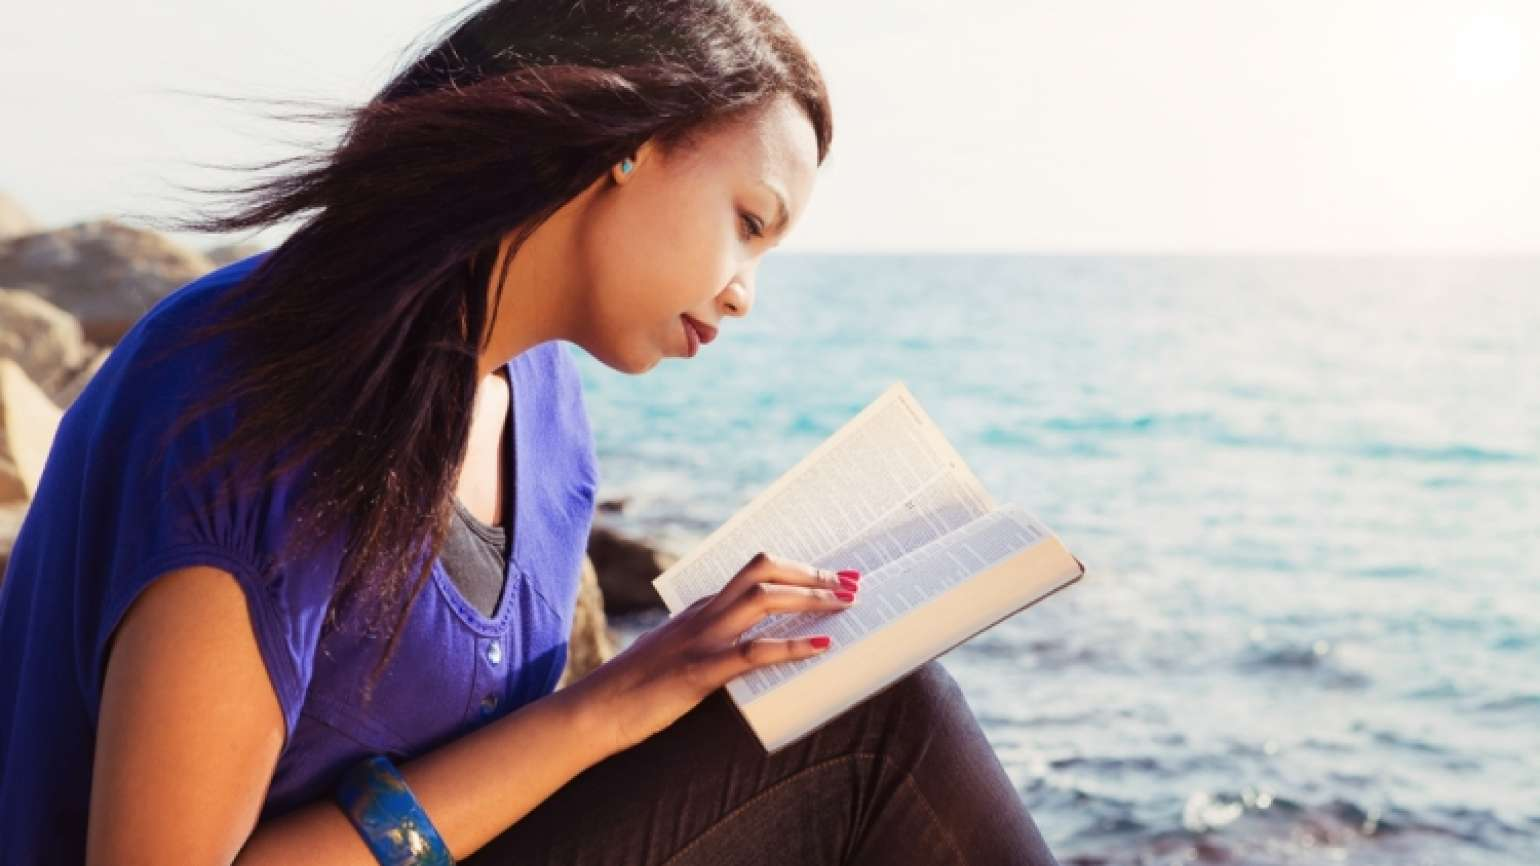 8 faith tips to help you get the most from your Bible